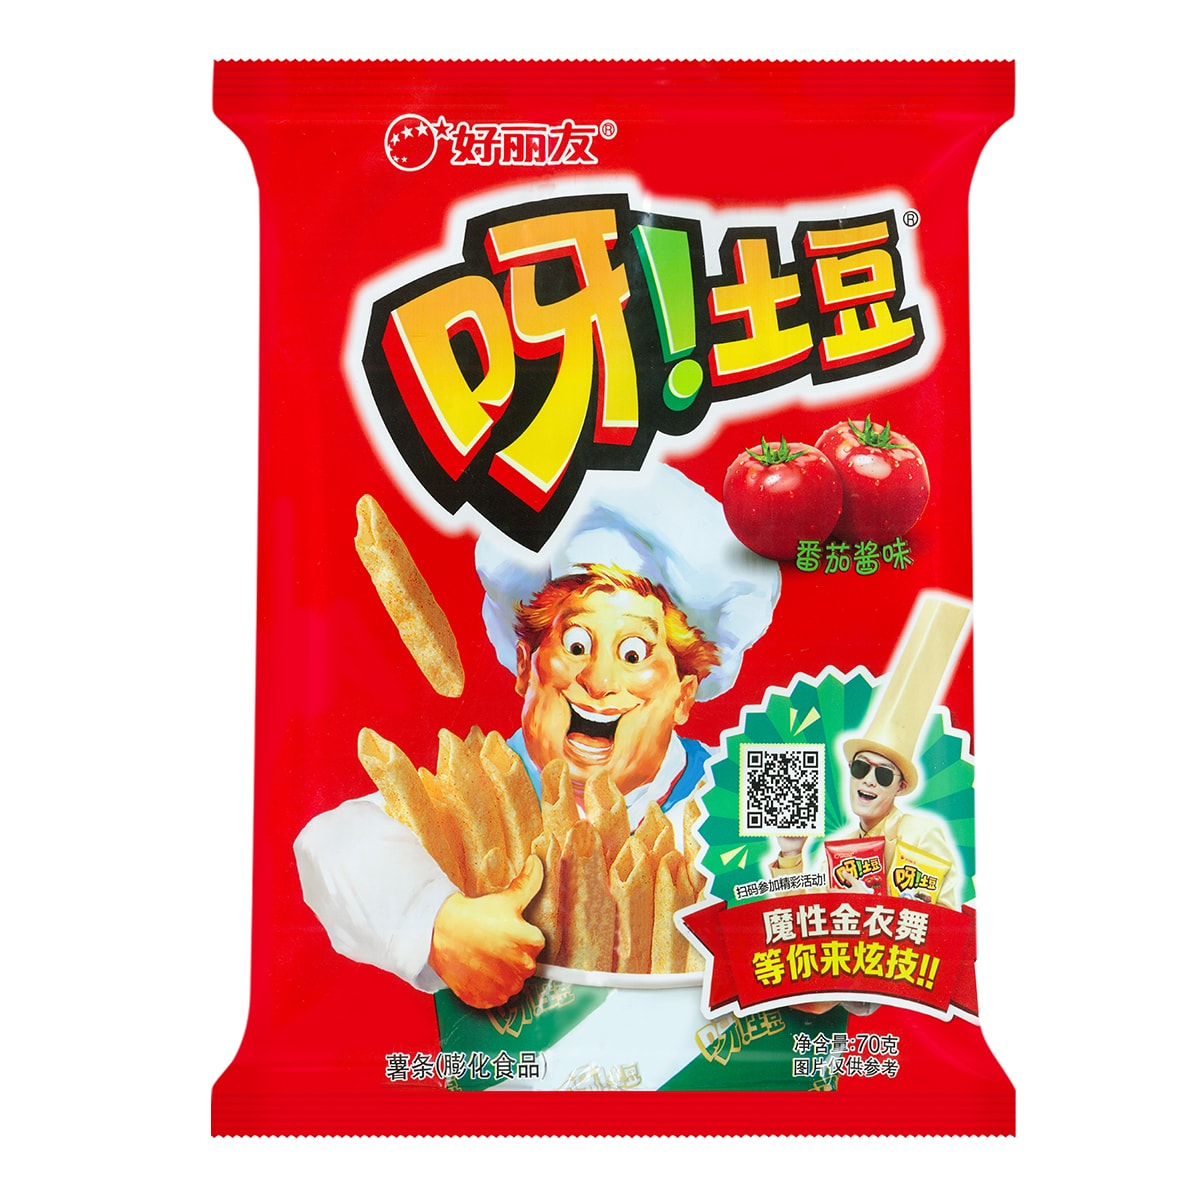 ORION Potato Stix Tomato 70g